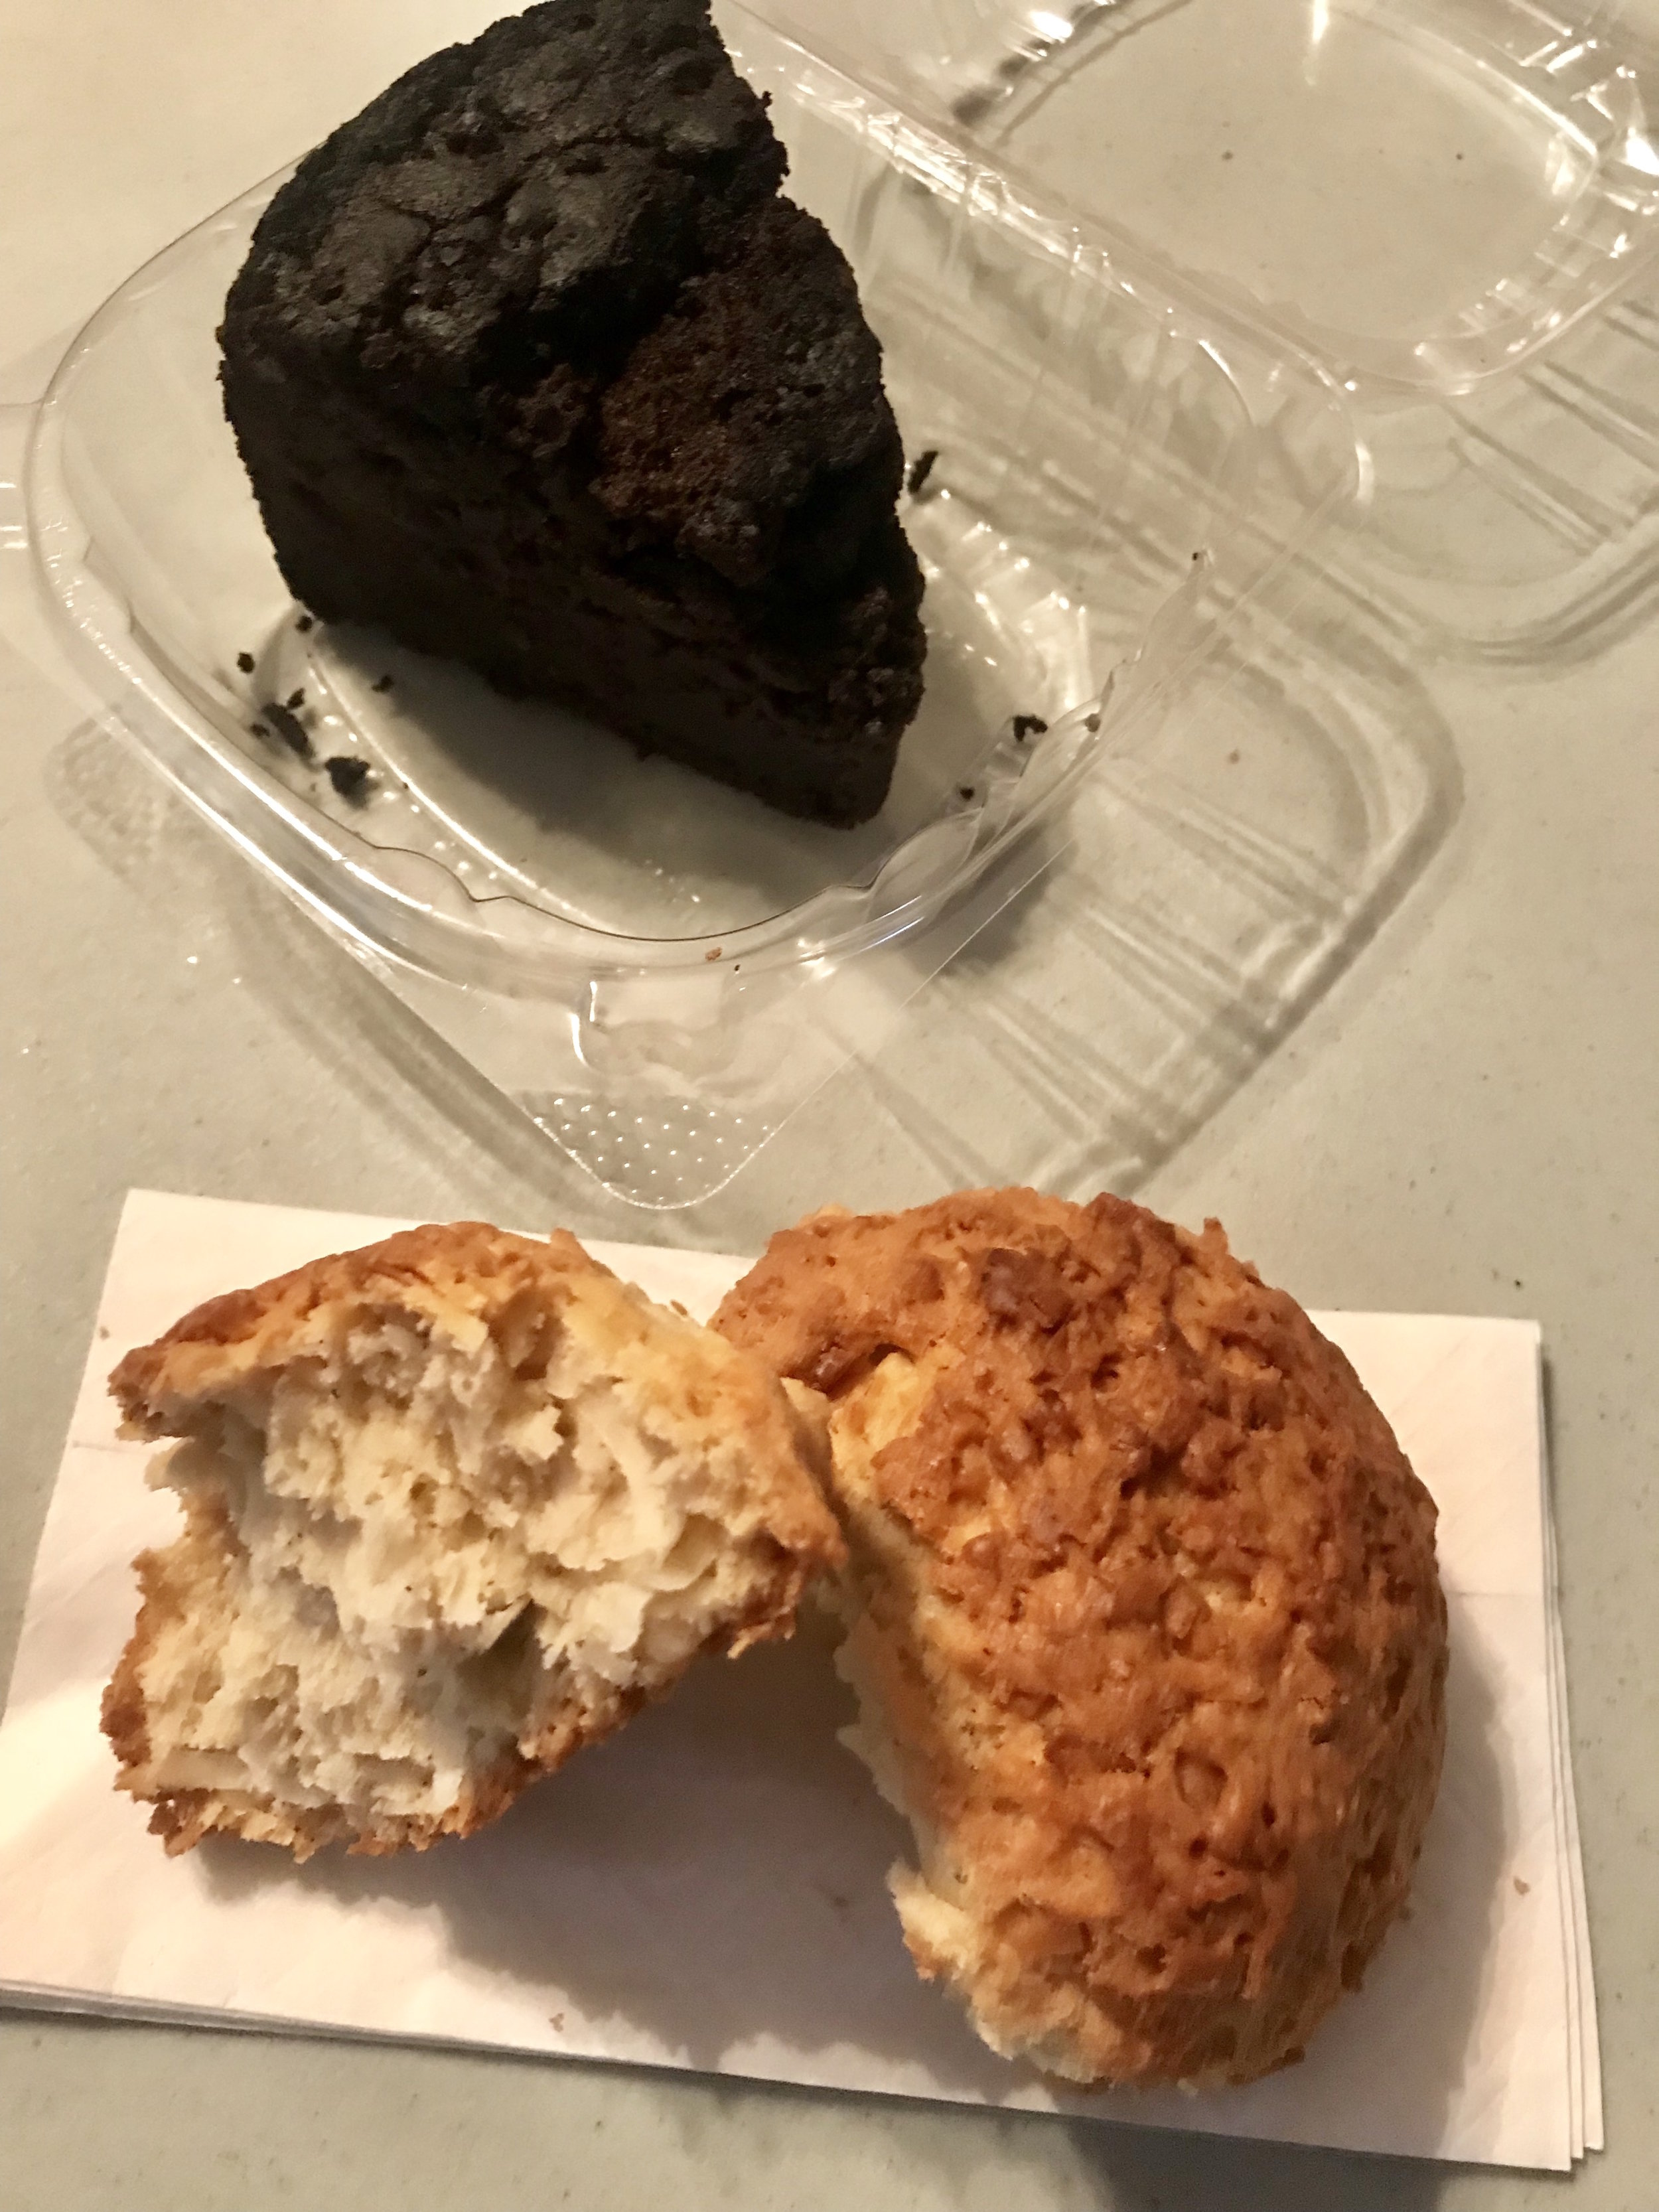 Rum and rock cake from Golden Krust.